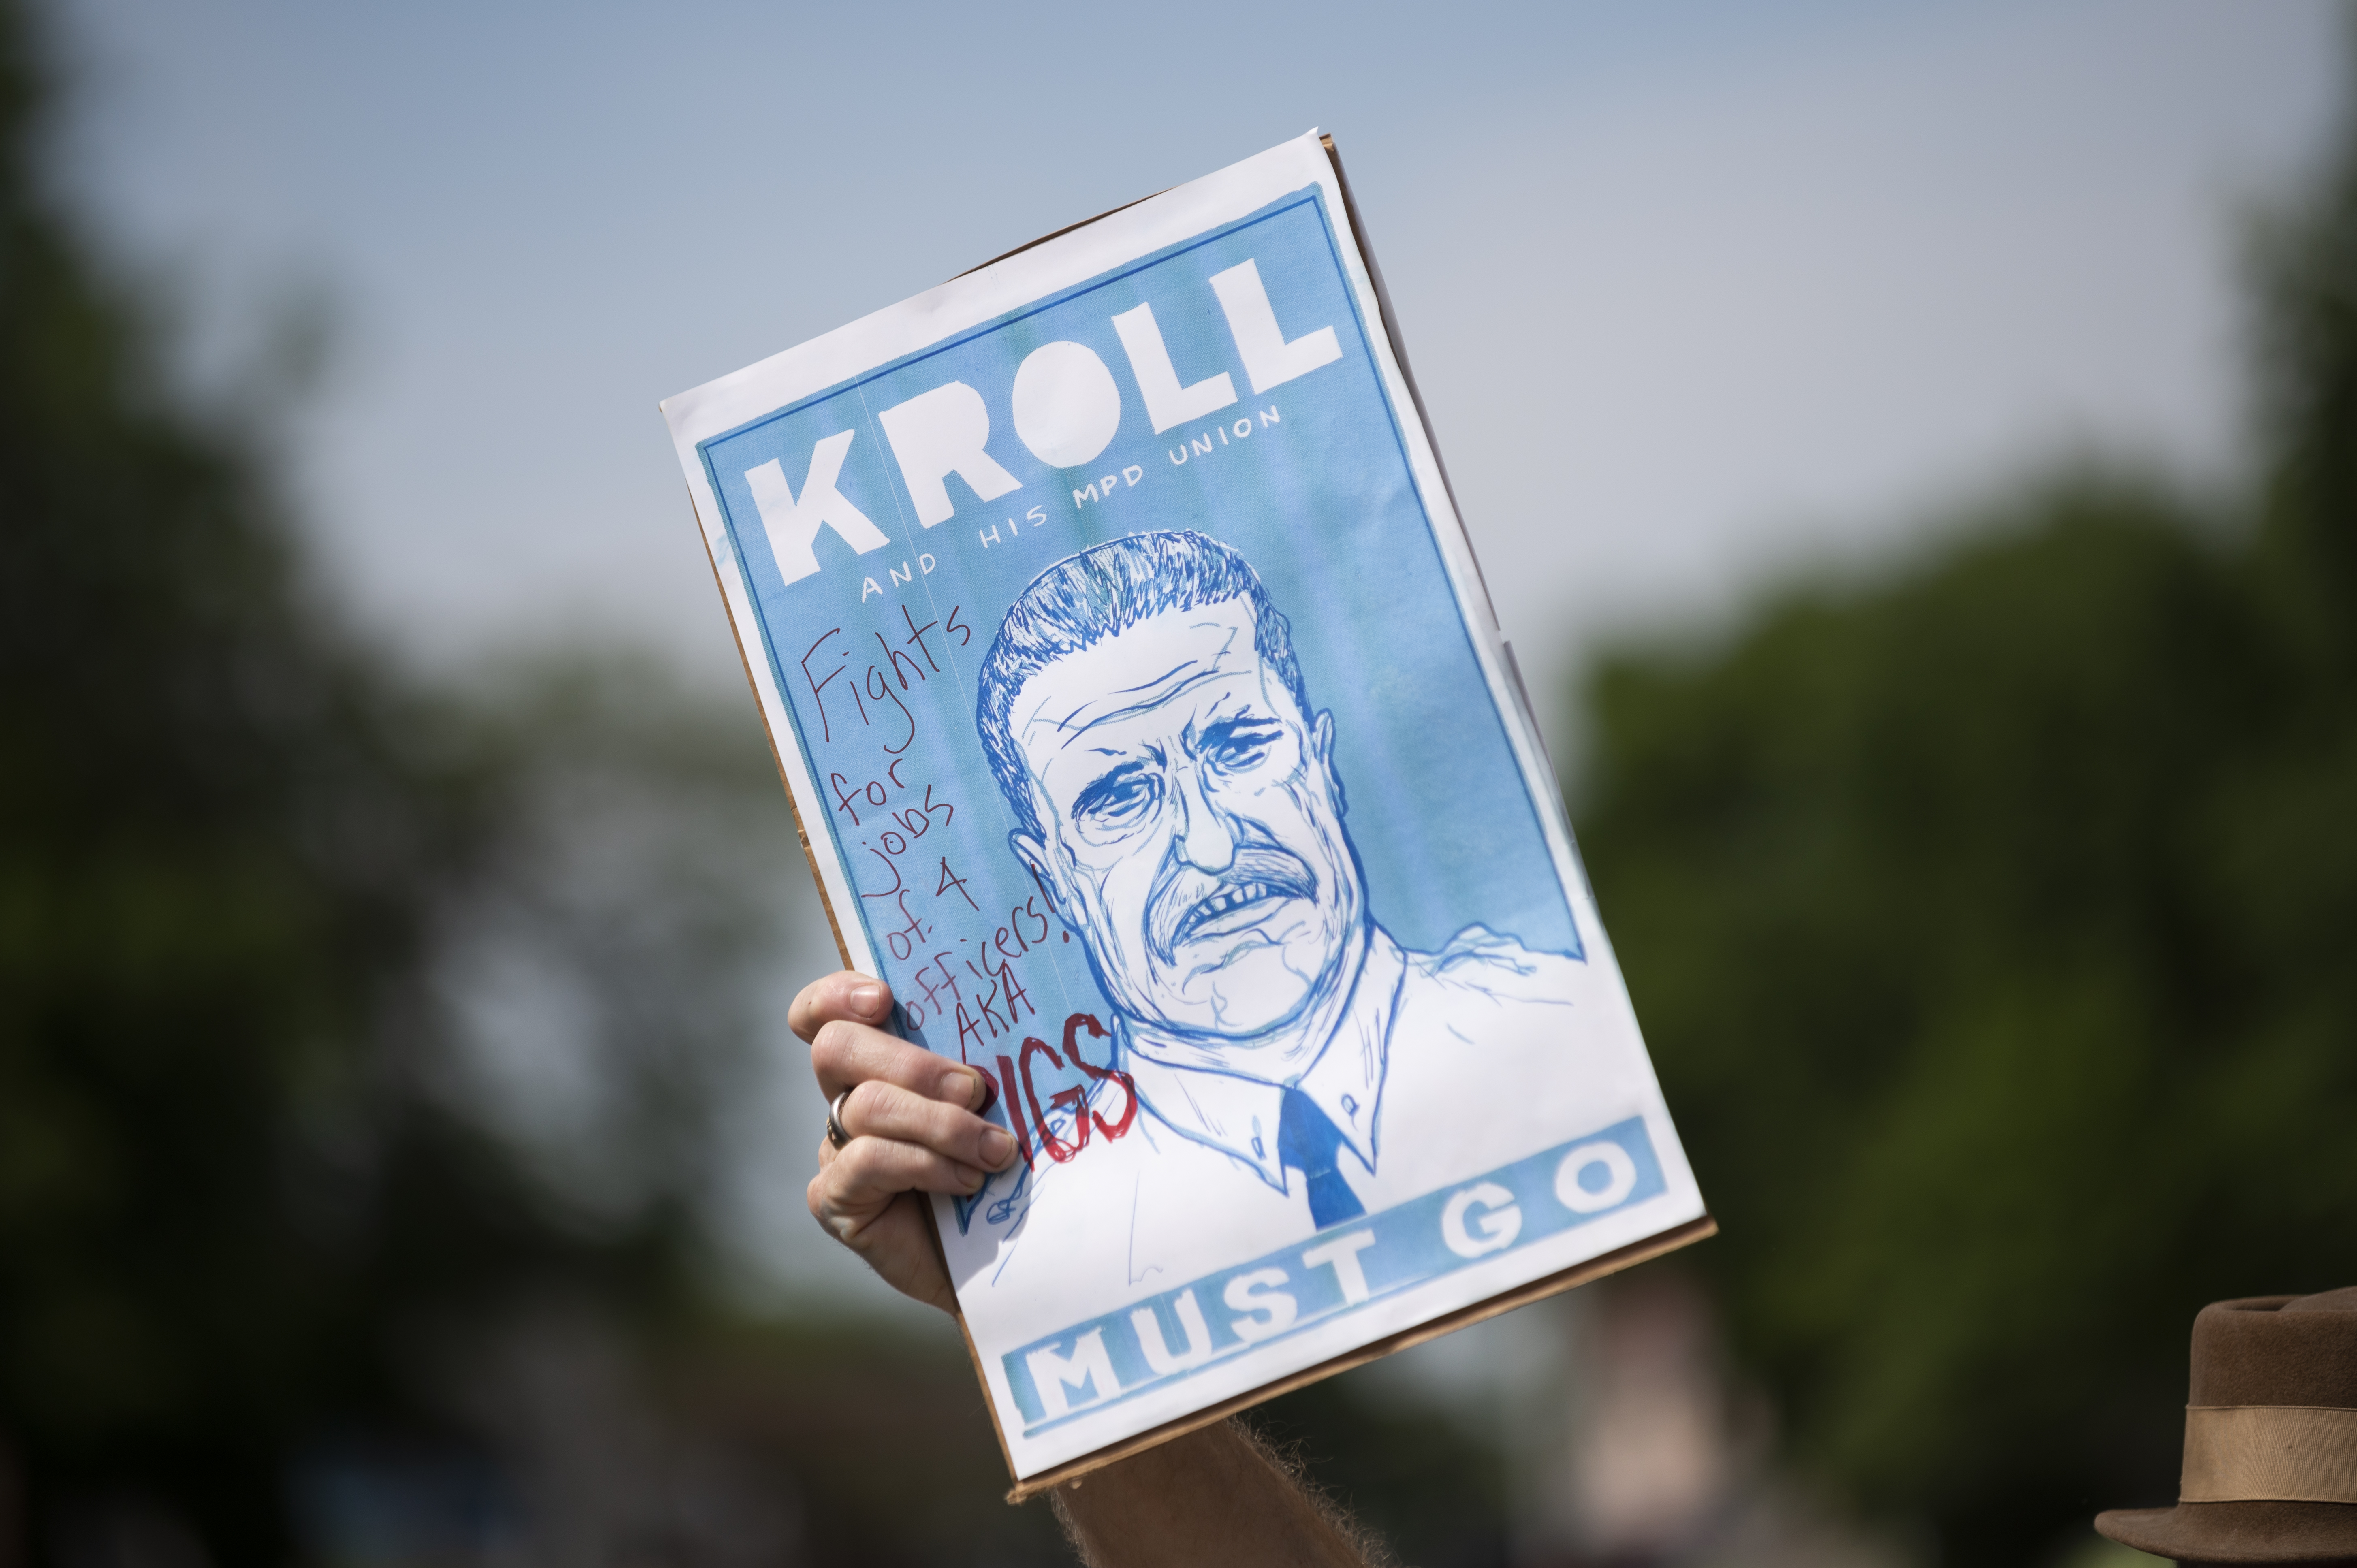 """A man holds up a sign reading """"Kroll Must Go"""" during a march calling for the city to defund the Minneapolis Police Department on June 6, 2020 in Minneapolis, Minnesota. There have been calls for Minneapolis Police Union chief Bob Kroll to resign in the wake of the killing of George Floyd on May 25 by MPD officers. (Photo by Stephen Maturen/Getty Images)"""